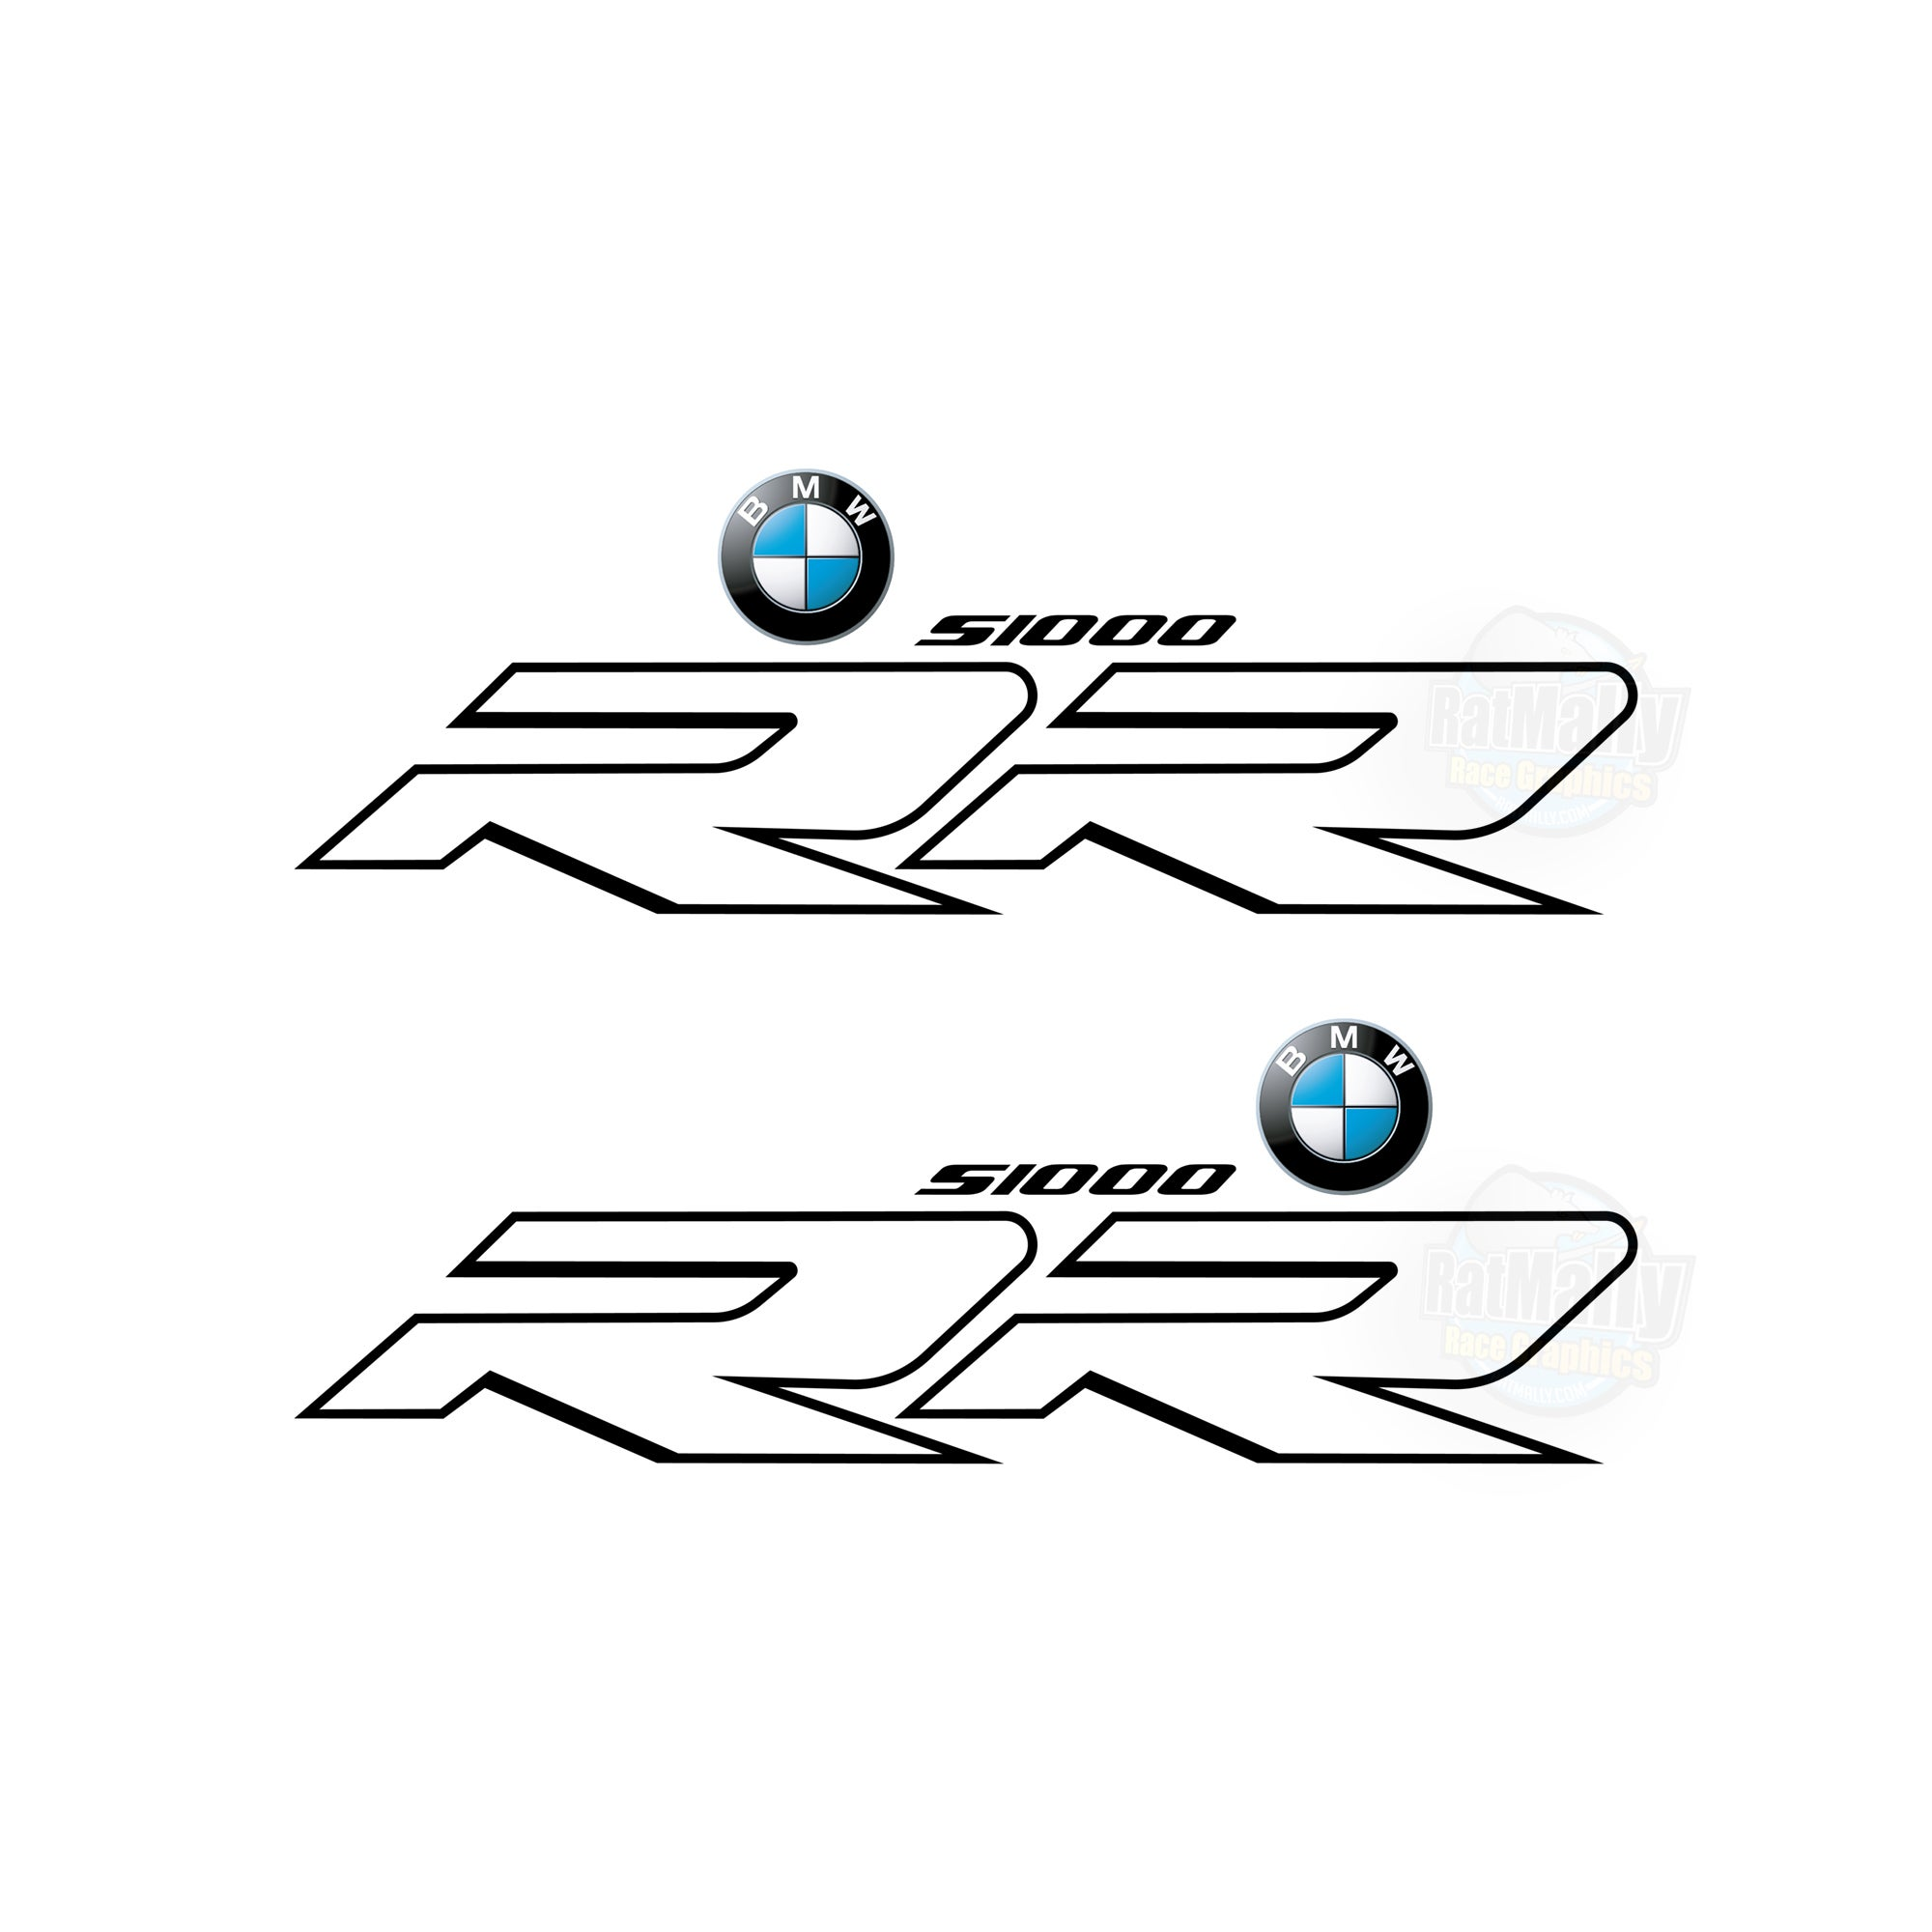 Bmw S1000 Rr Graphics Pack Ratmally Race Graphics